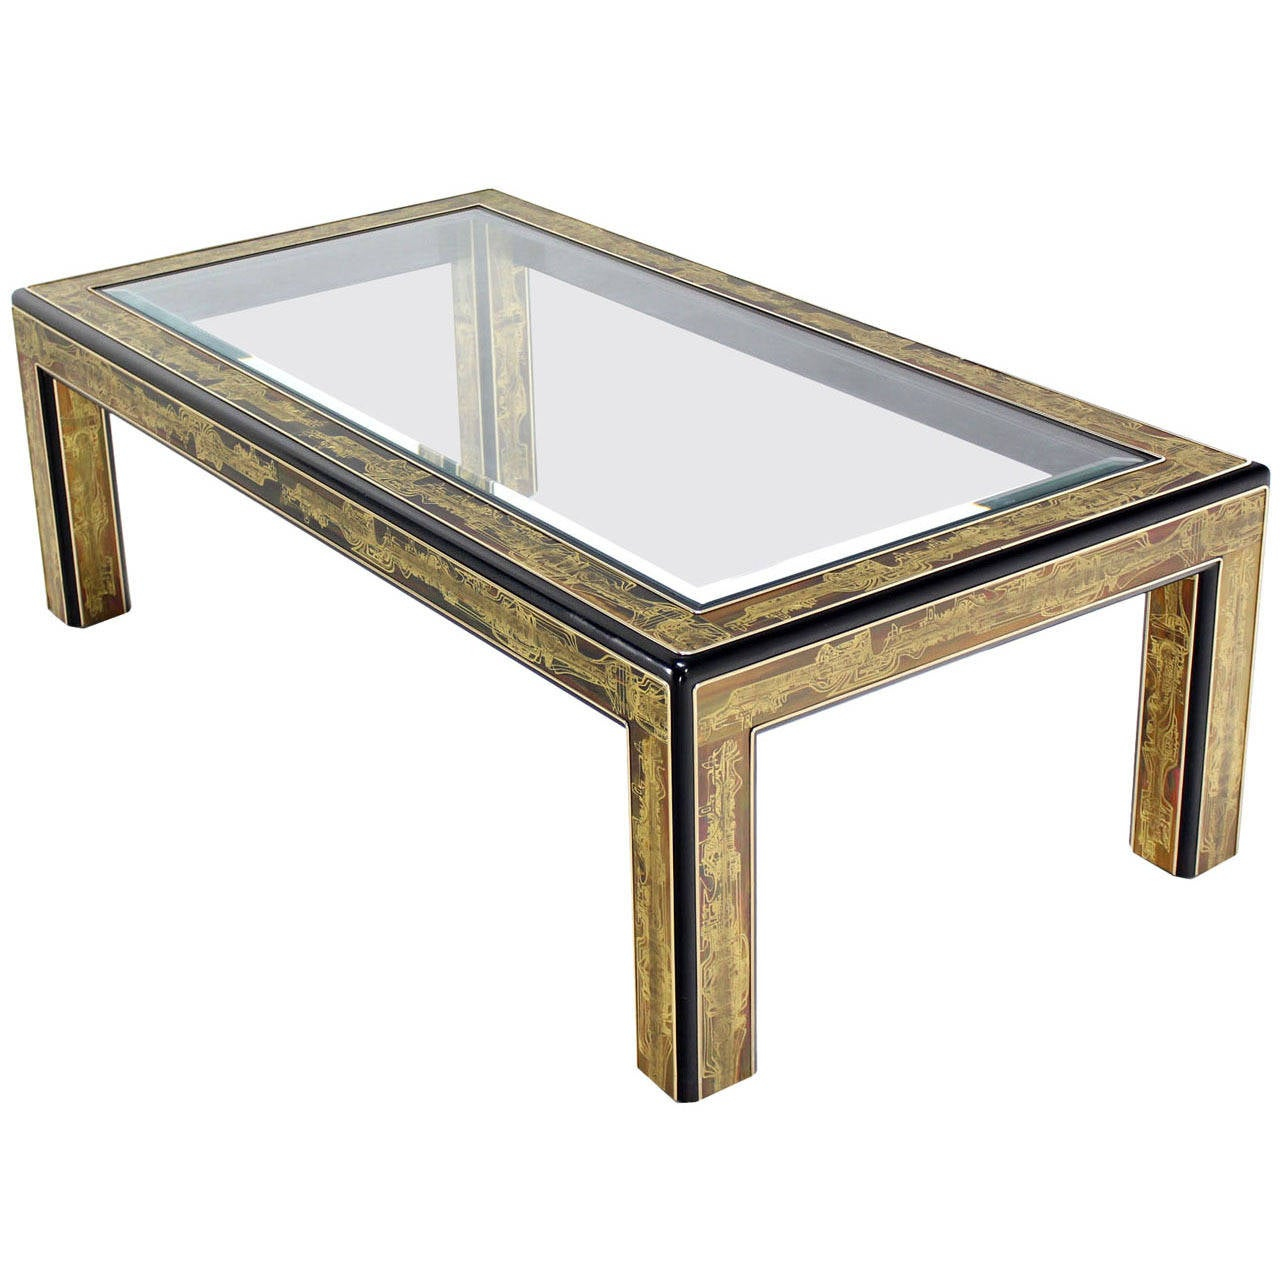 Rectangular glass top brass and wood base coffee table by mastercraft at 1stdibs Coffee tables glass